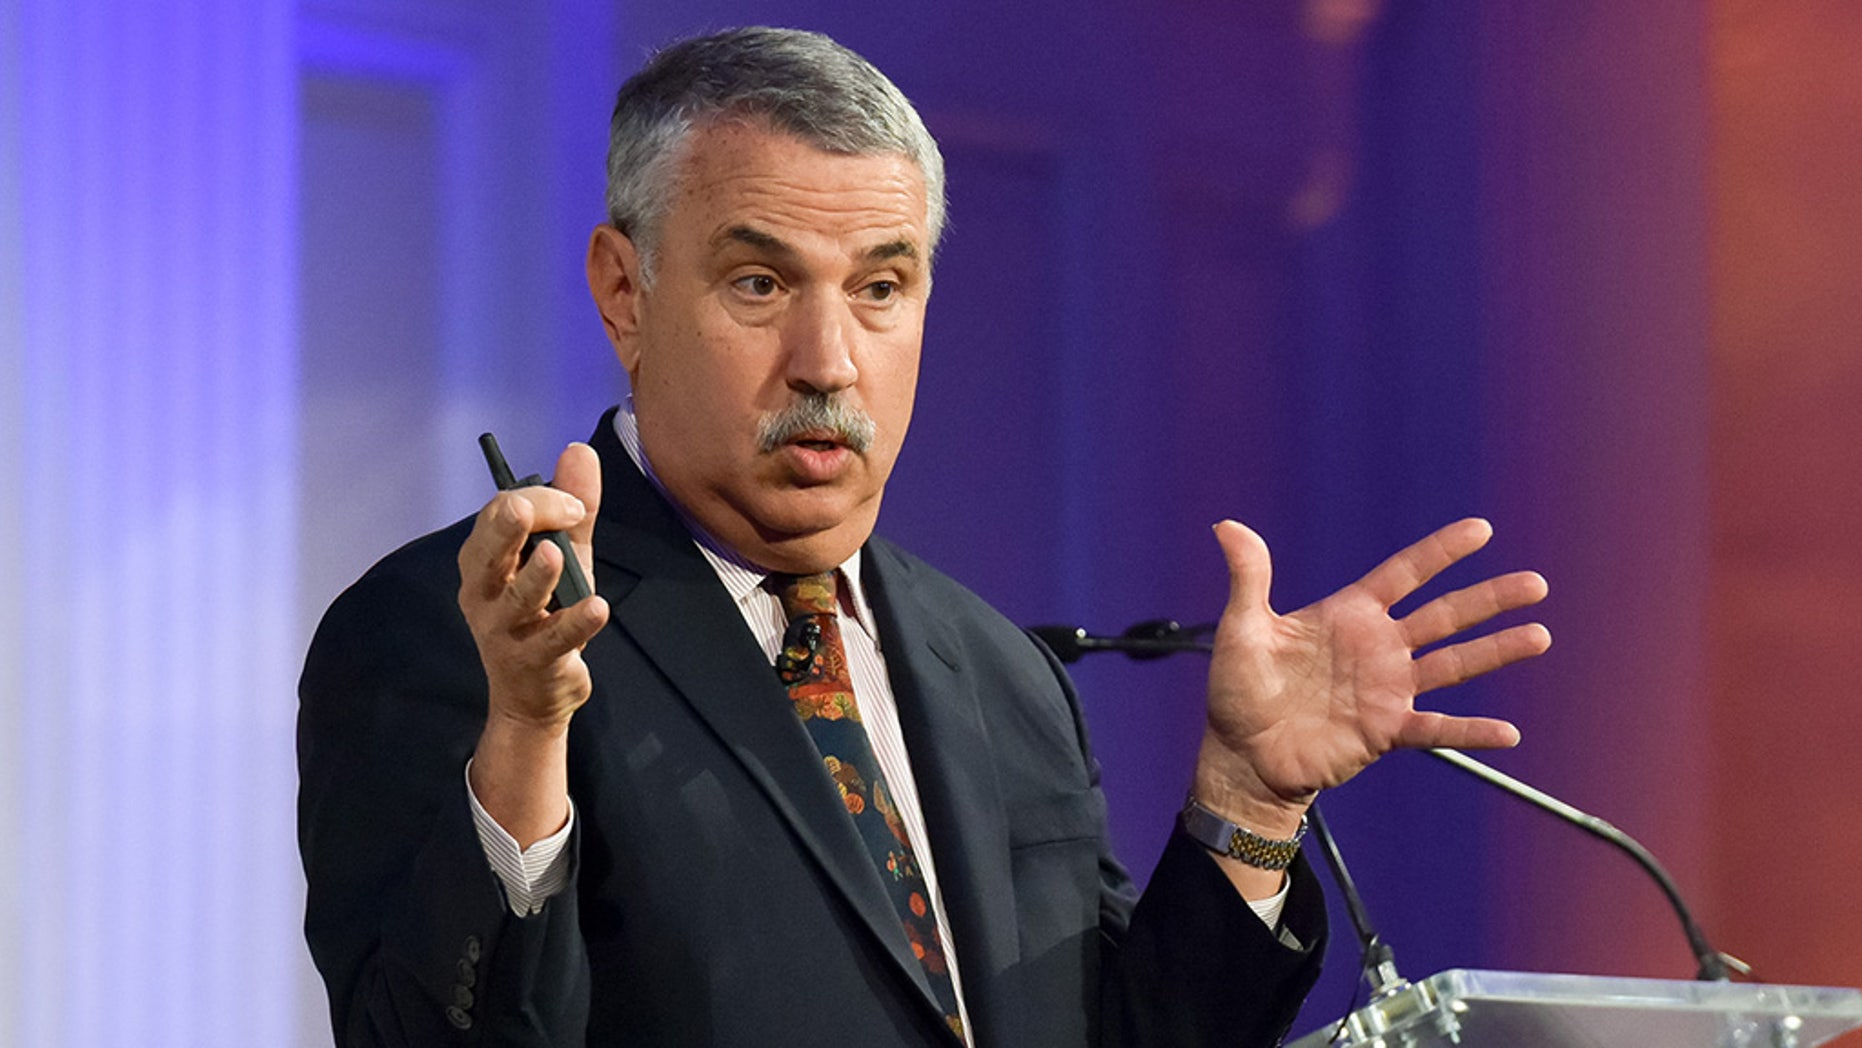 Westlake Legal Group Thomas-Friedman-Getty Long-time New York Times' liberal columnist argues for Trump's border wall: 'The solution is a high wall' Liam Quinn fox-news/us/immigration/border-security fox-news/us/immigration fox-news/topic/border-wall fox-news/person/donald-trump fox-news/entertainment/media fox news fnc/politics fnc article 494c8268-4dd8-572c-88c8-ec00ee417e6c